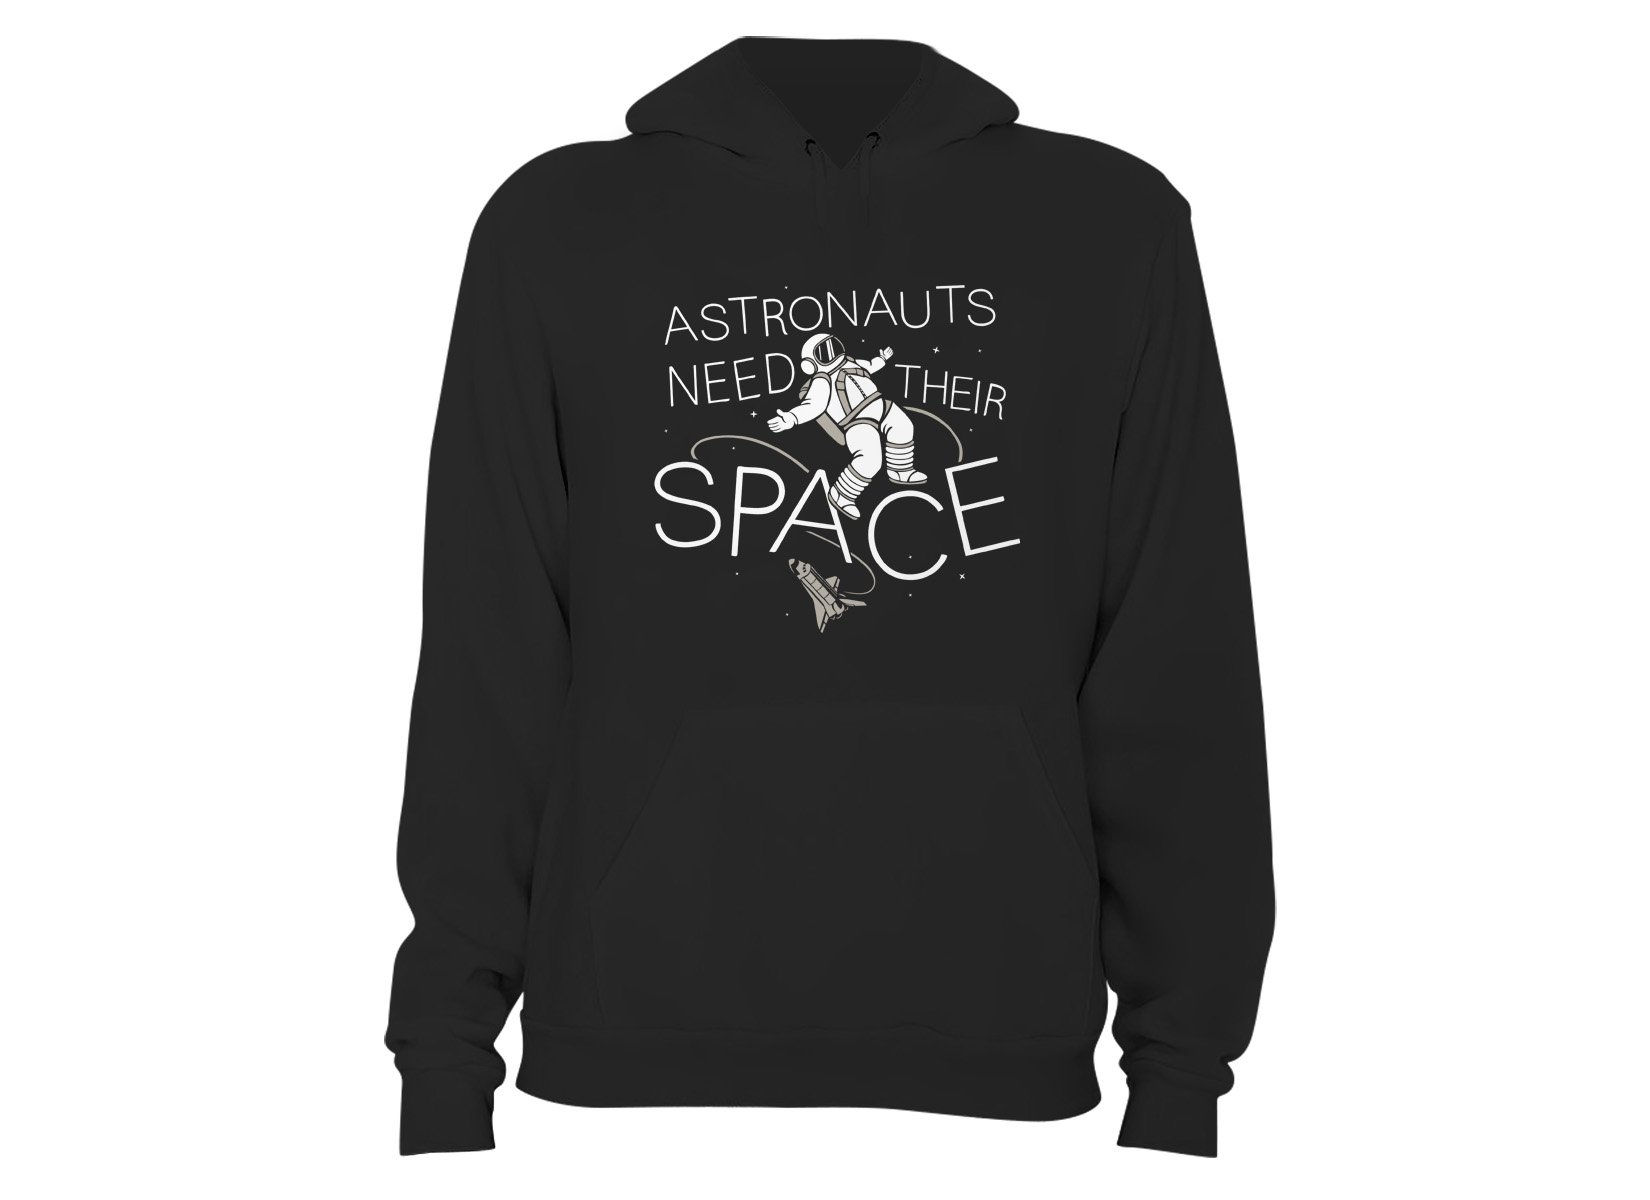 Astronauts Need Their Space on Hoodie